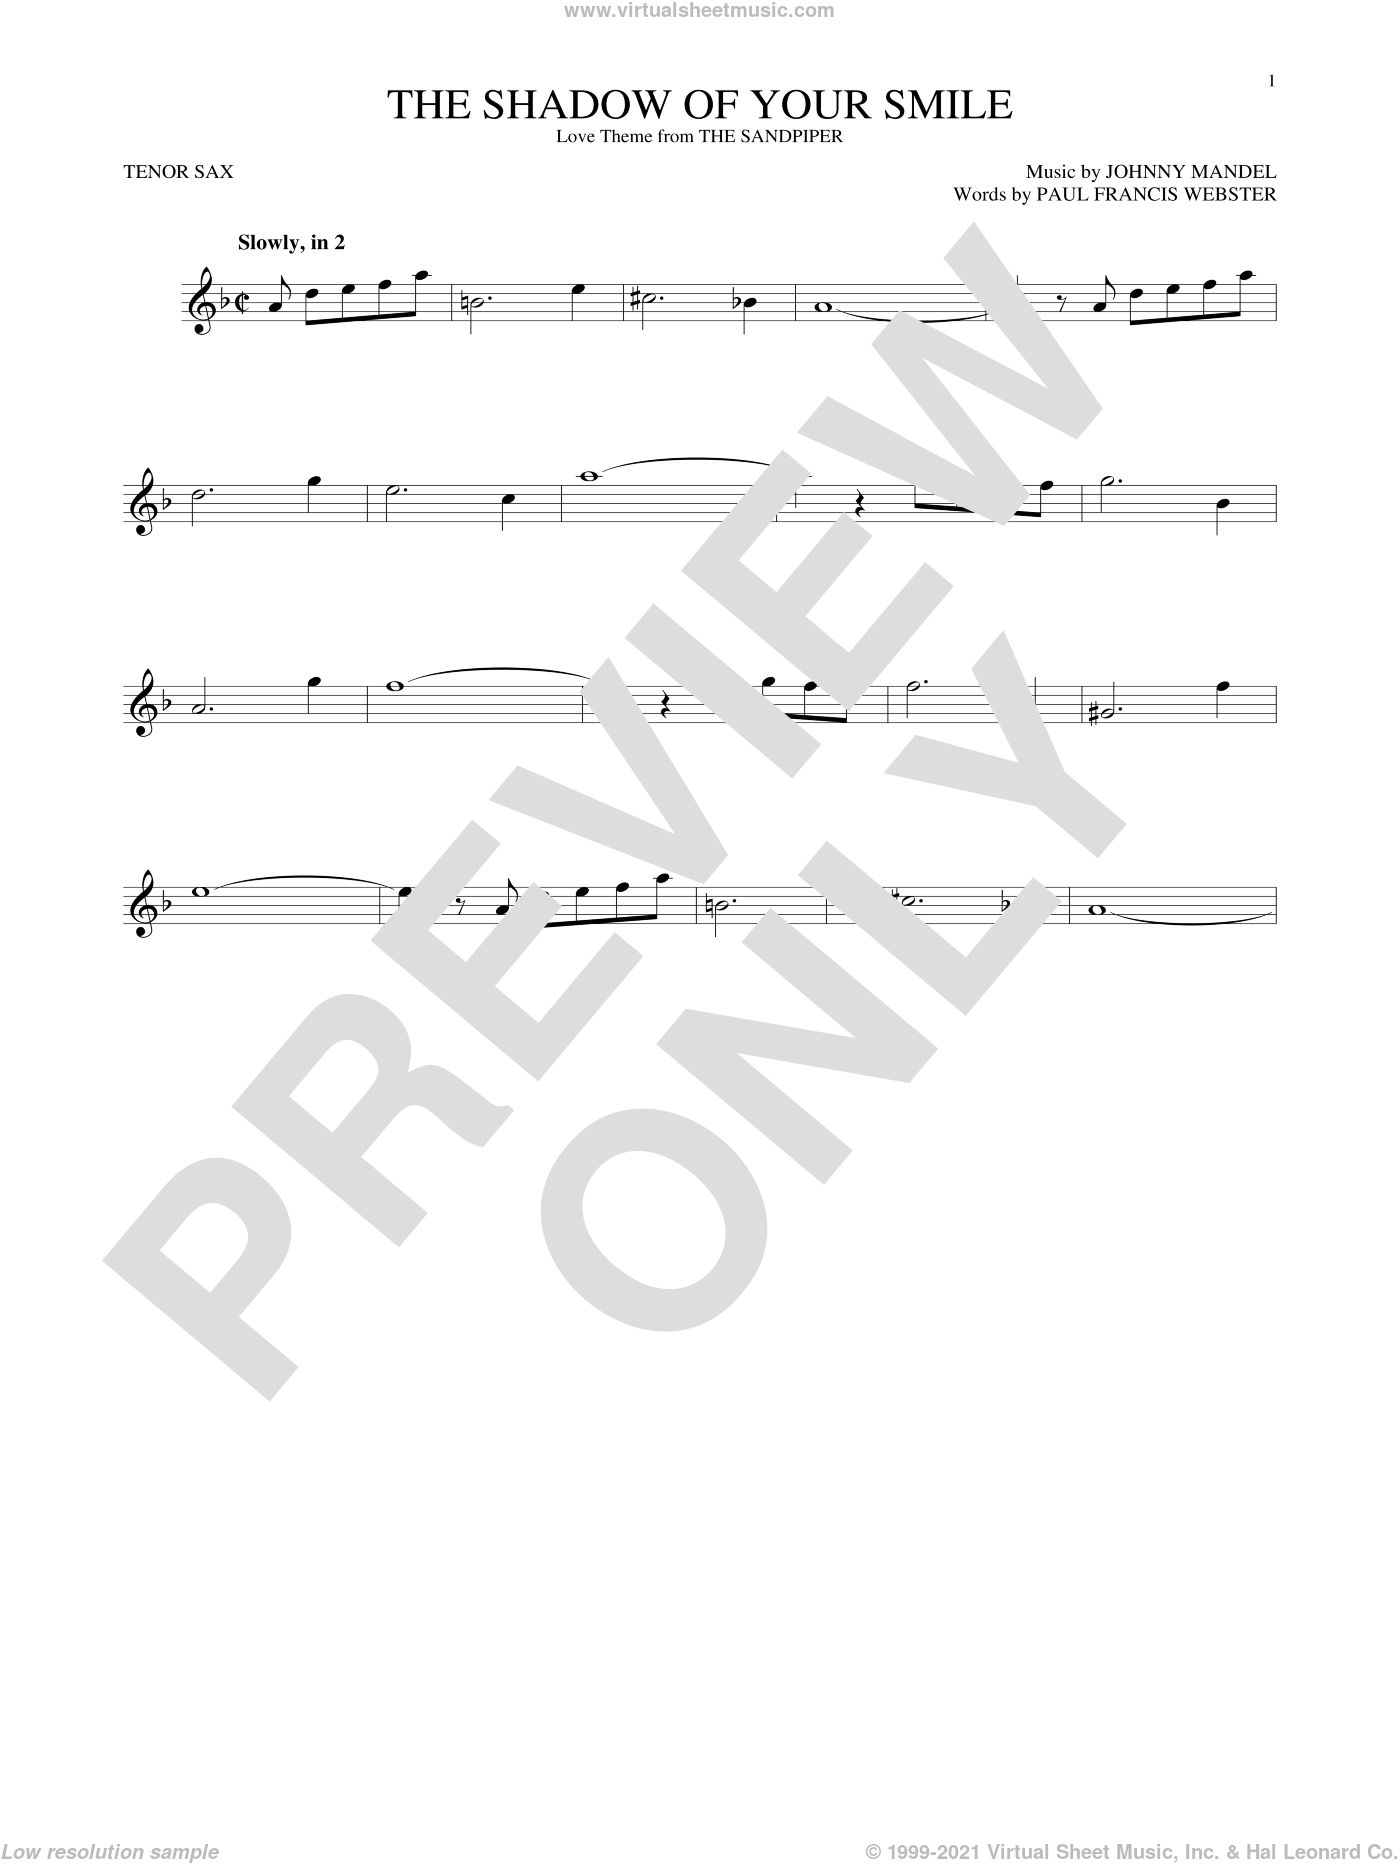 The Shadow Of Your Smile sheet music for tenor saxophone solo ( Sax) by Paul Francis Webster and Johnny Mandel. Score Image Preview.